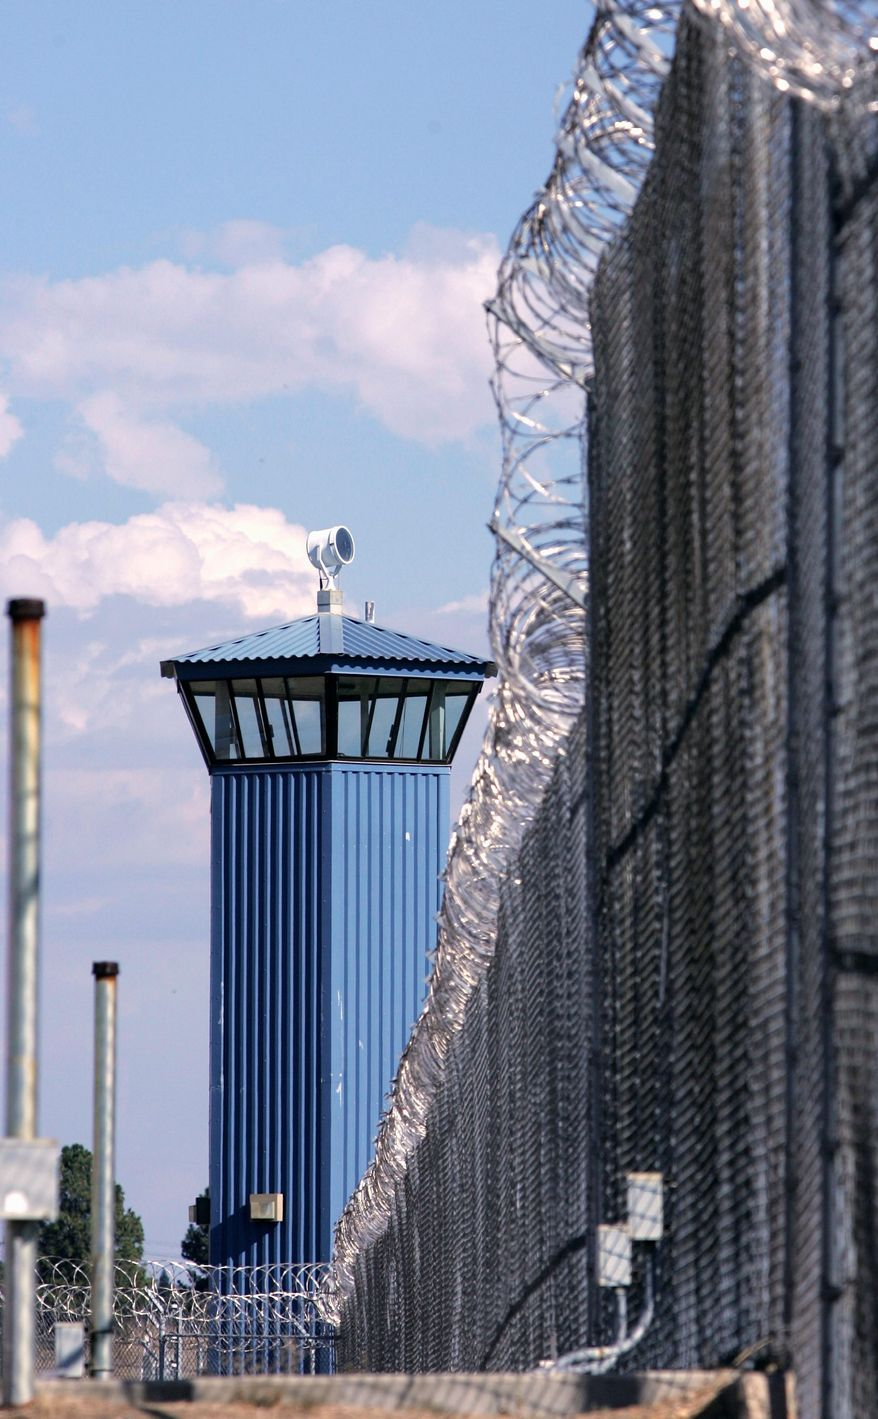 A guard tower is seen behind the wire fence that surrounds California State Prison, Sacramento, in Folsom, Calif, in this August 31, 2007, photo. In an effort to slow California's growing prison population, Gov. Arnold Schwarzenegger and lawmakers are looking for ways to review the state's determinate sentencing practice. (AP Photo/Rich Pedroncelli)